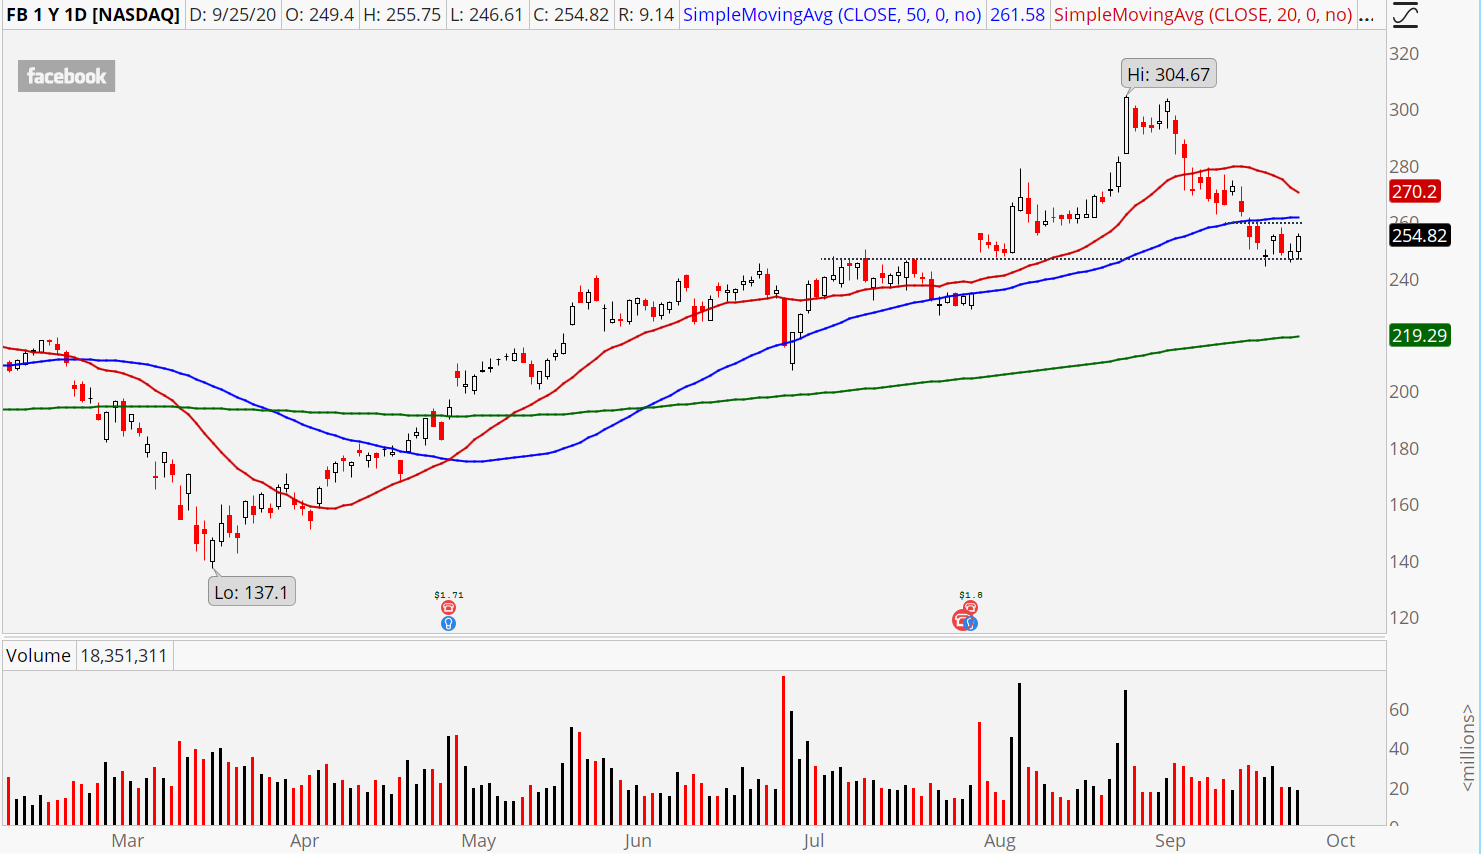 Facebook (FB) daily chart showing double bottom